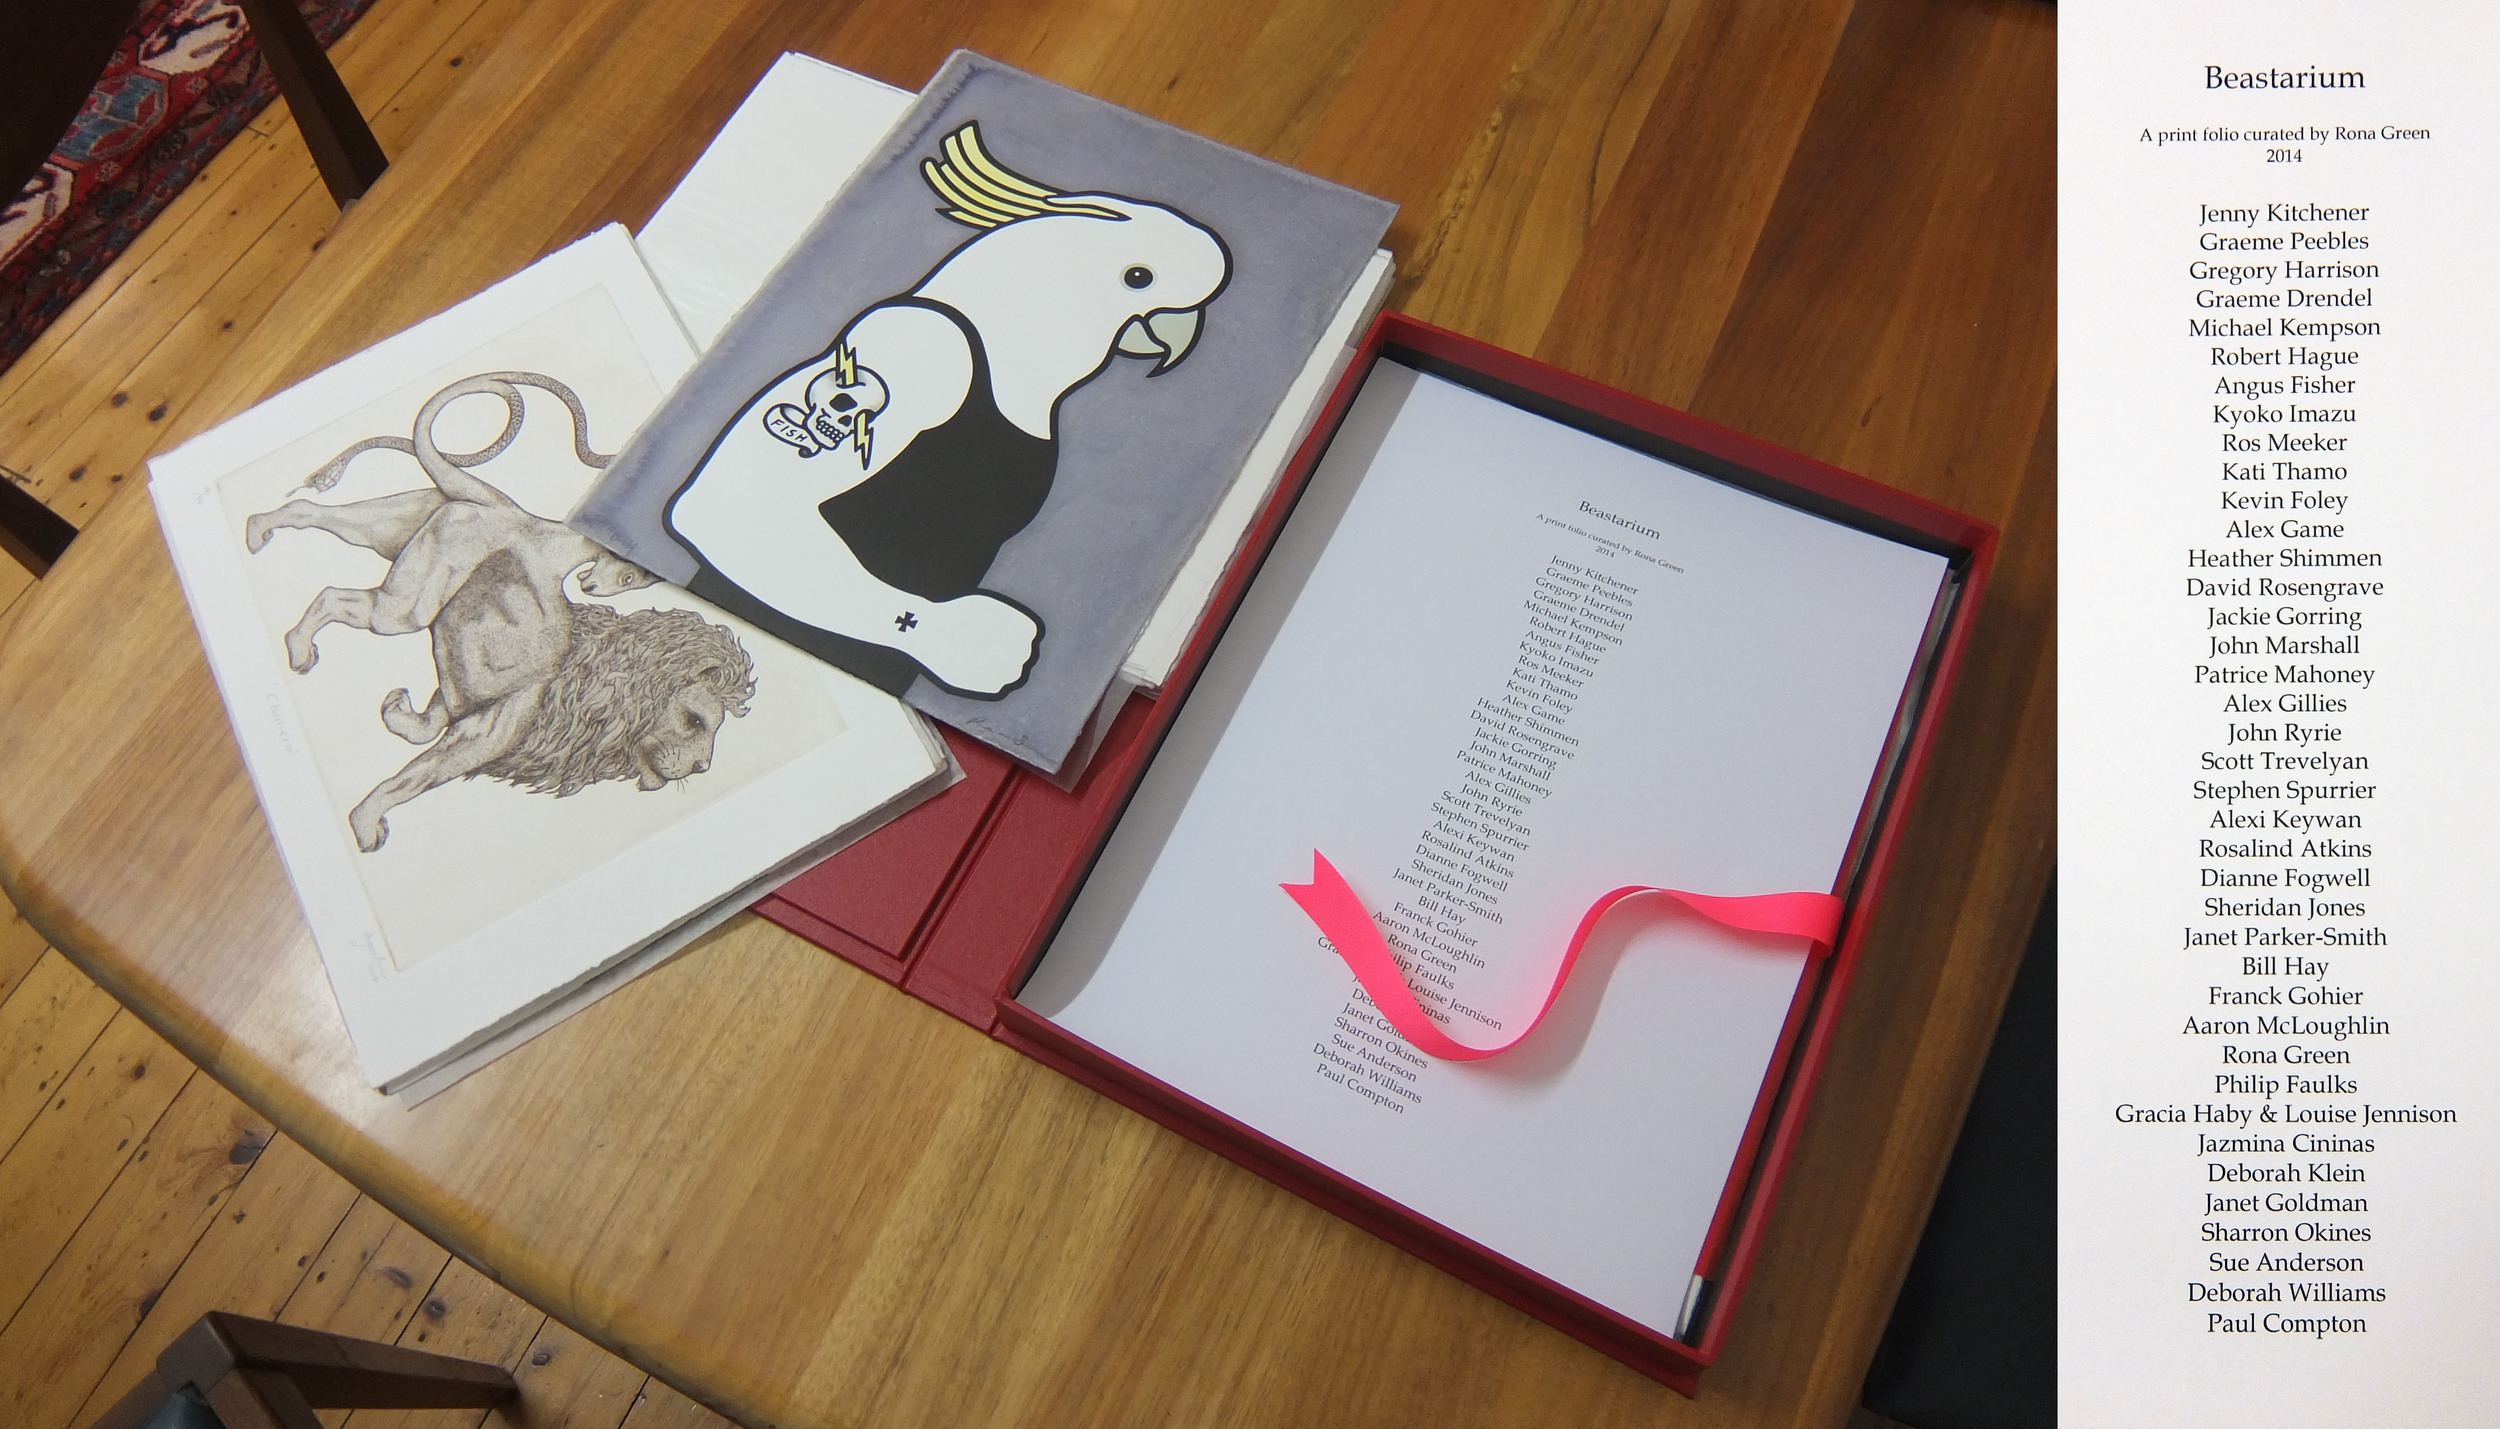 First look at the 'Beastarium' folio including works by Angus Fisher and Rona Green. Full list of participants (right)